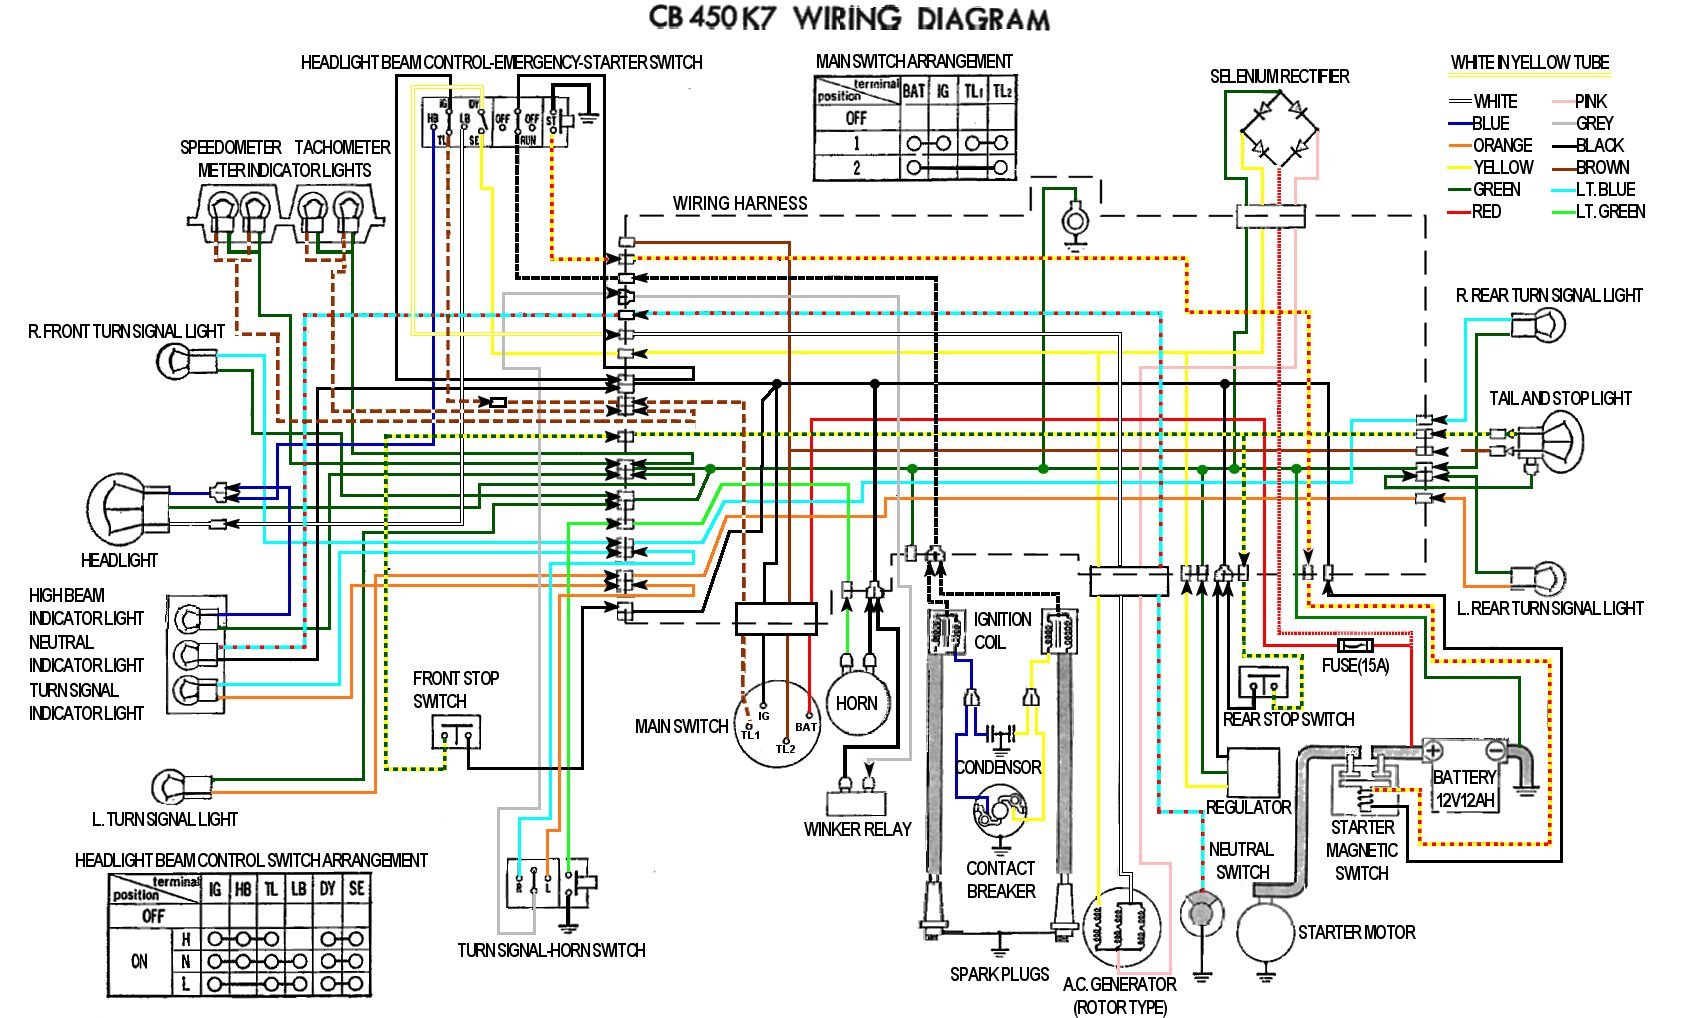 service wiring diagram cb450 color wiring diagram  now corrected  honda twins service entrance panel wiring diagram cb450 color wiring diagram  now